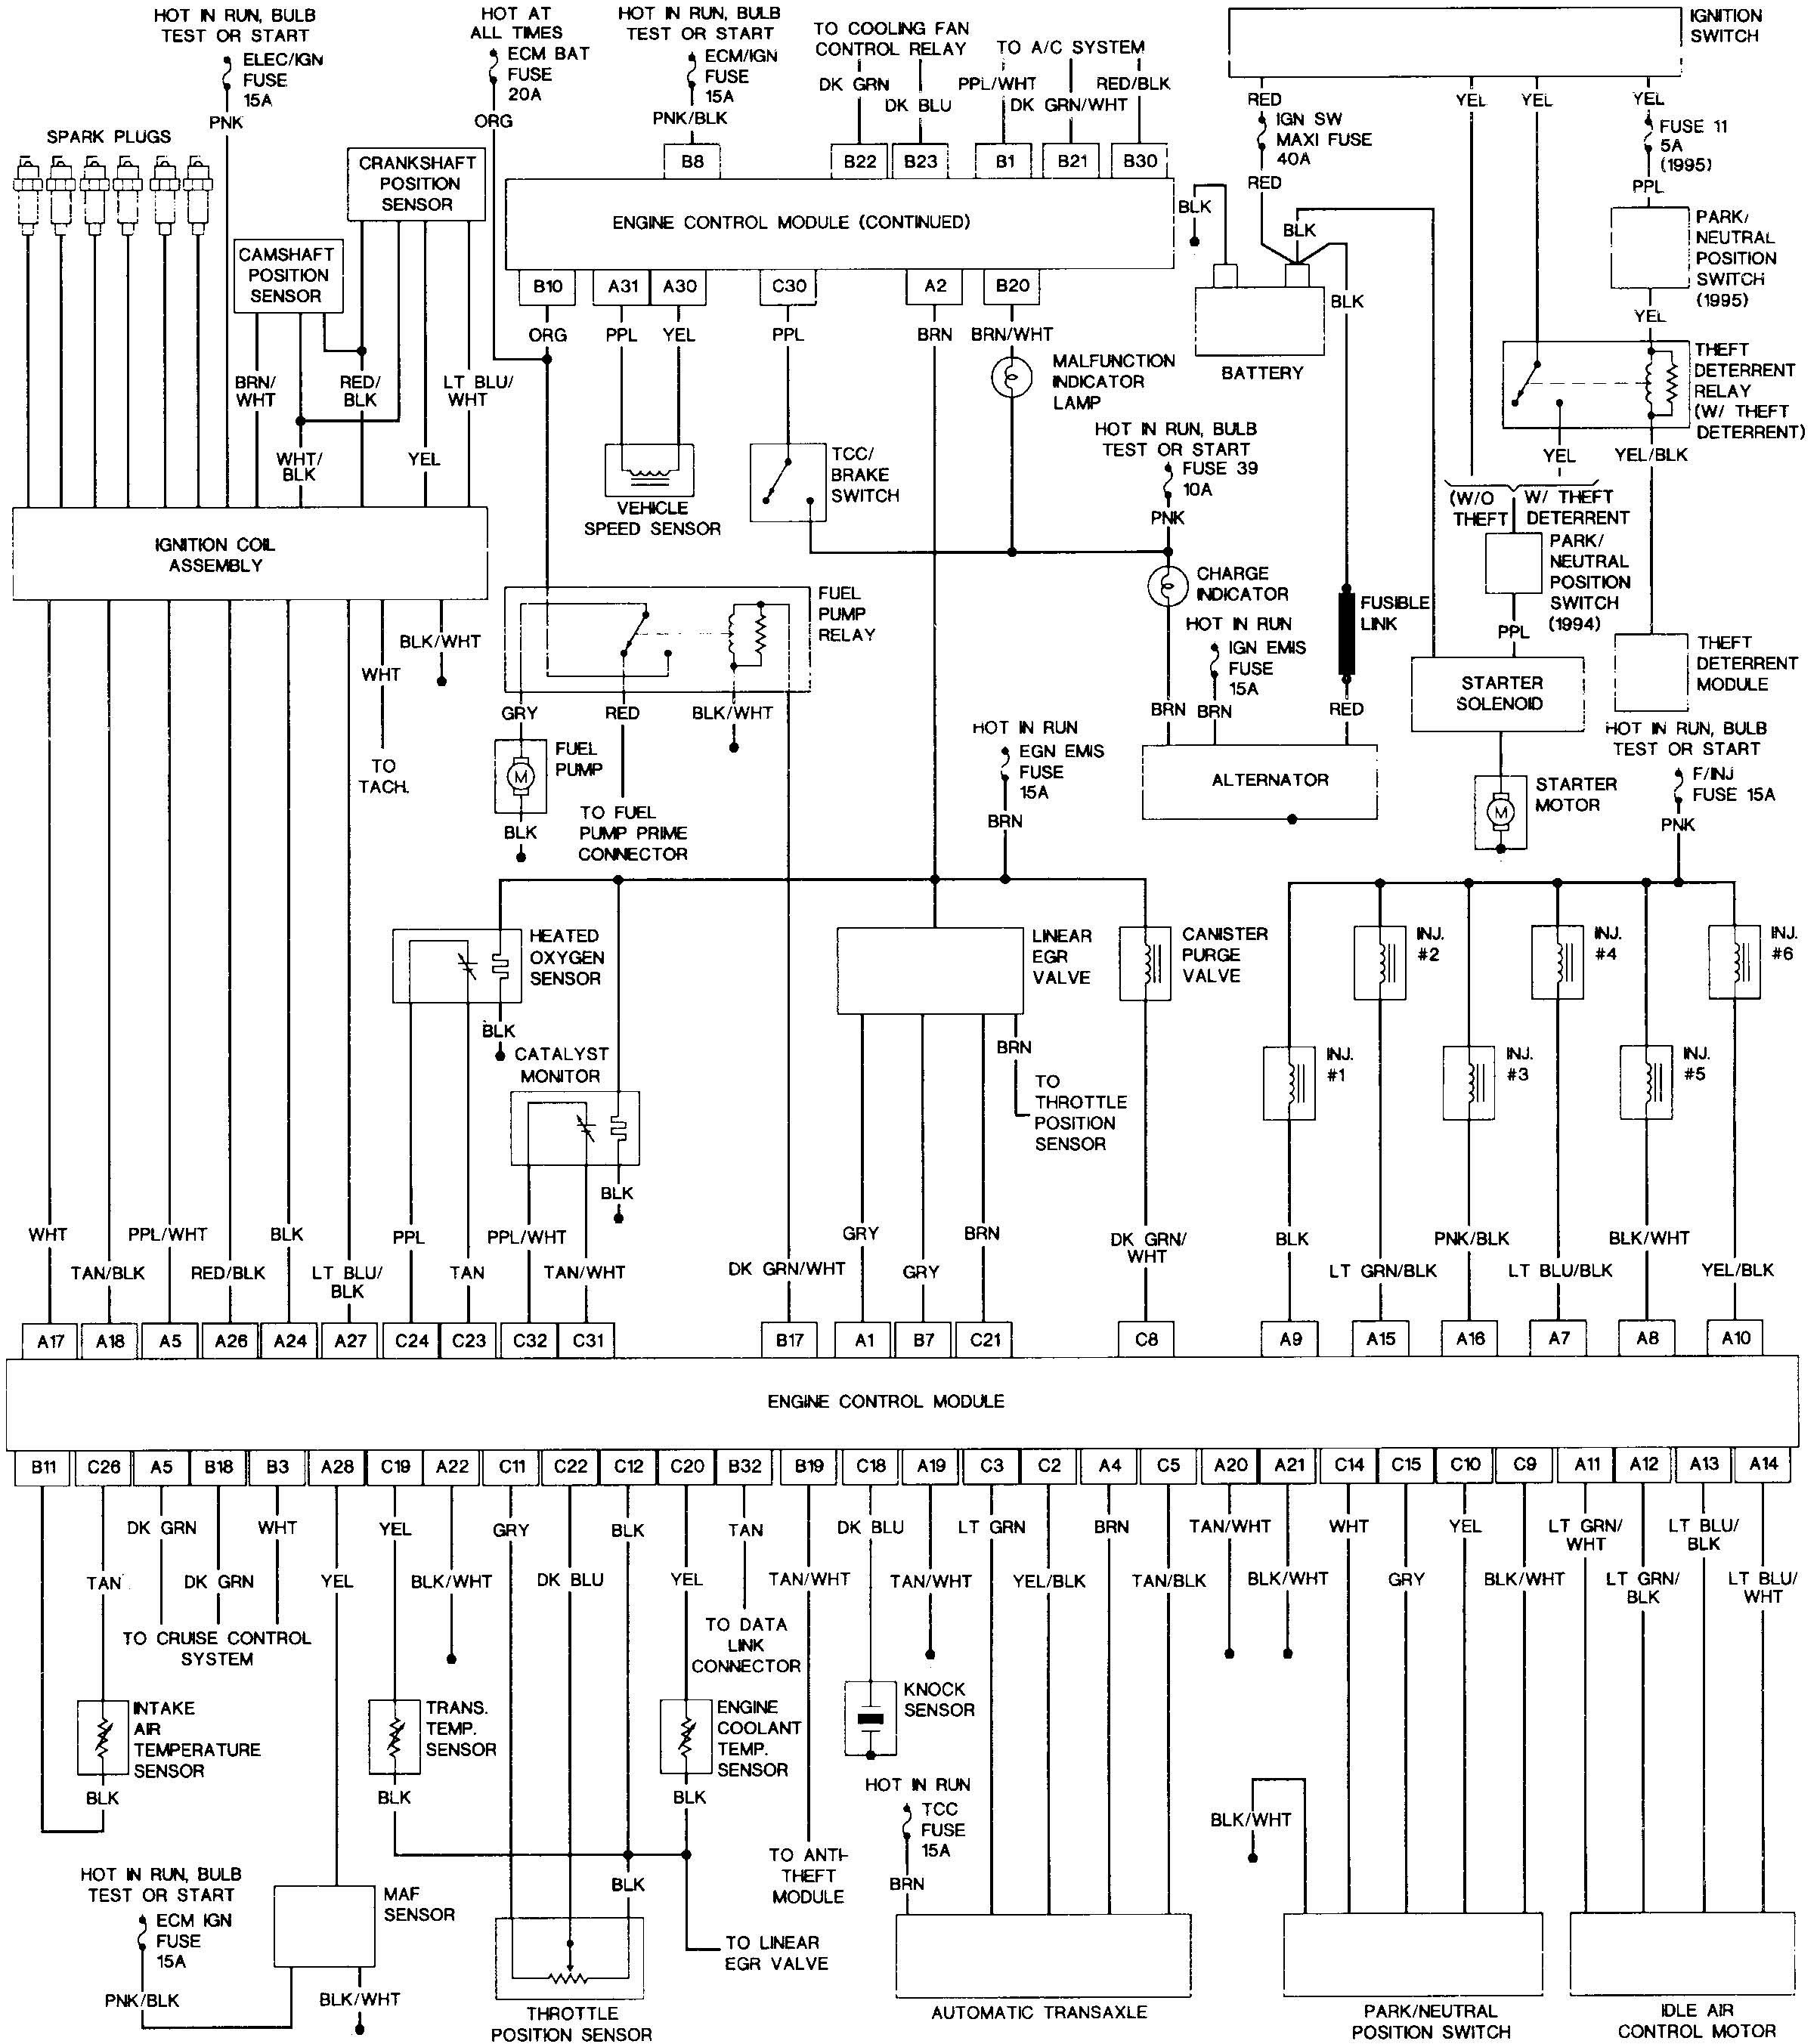 Buick Rendezvous Engine Diagram 2012 Buick Enclave Wiring Diagram Worksheet and Wiring Diagram • Of Buick Rendezvous Engine Diagram